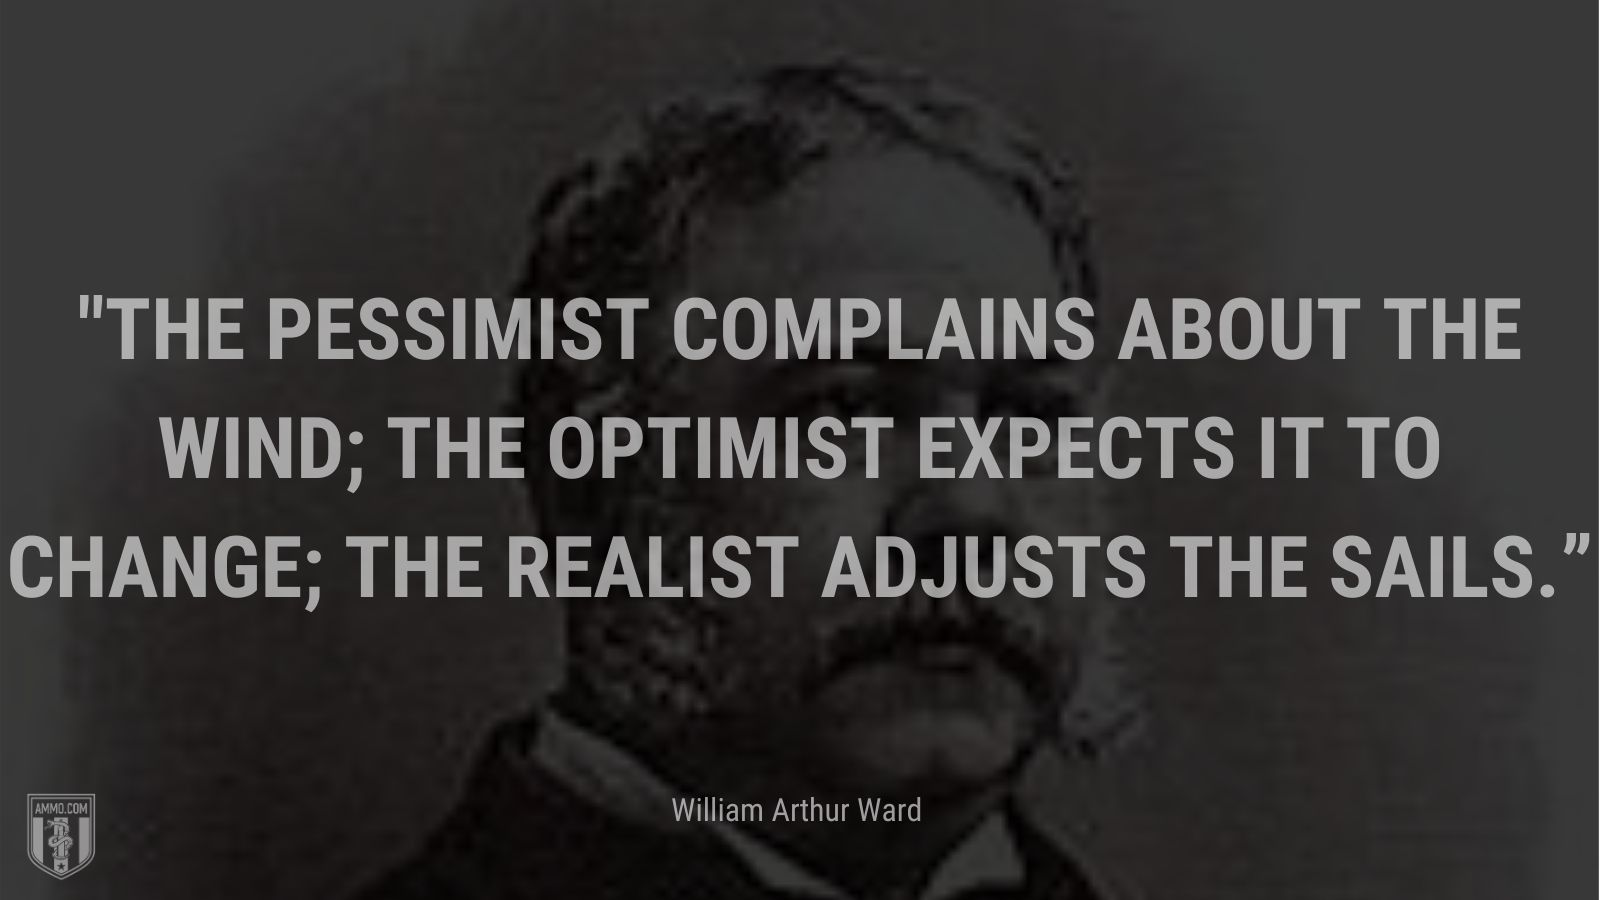 """""""The pessimist complains about the wind; the optimist expects it to change; the realist adjusts the sails."""" - William Arthur Ward"""